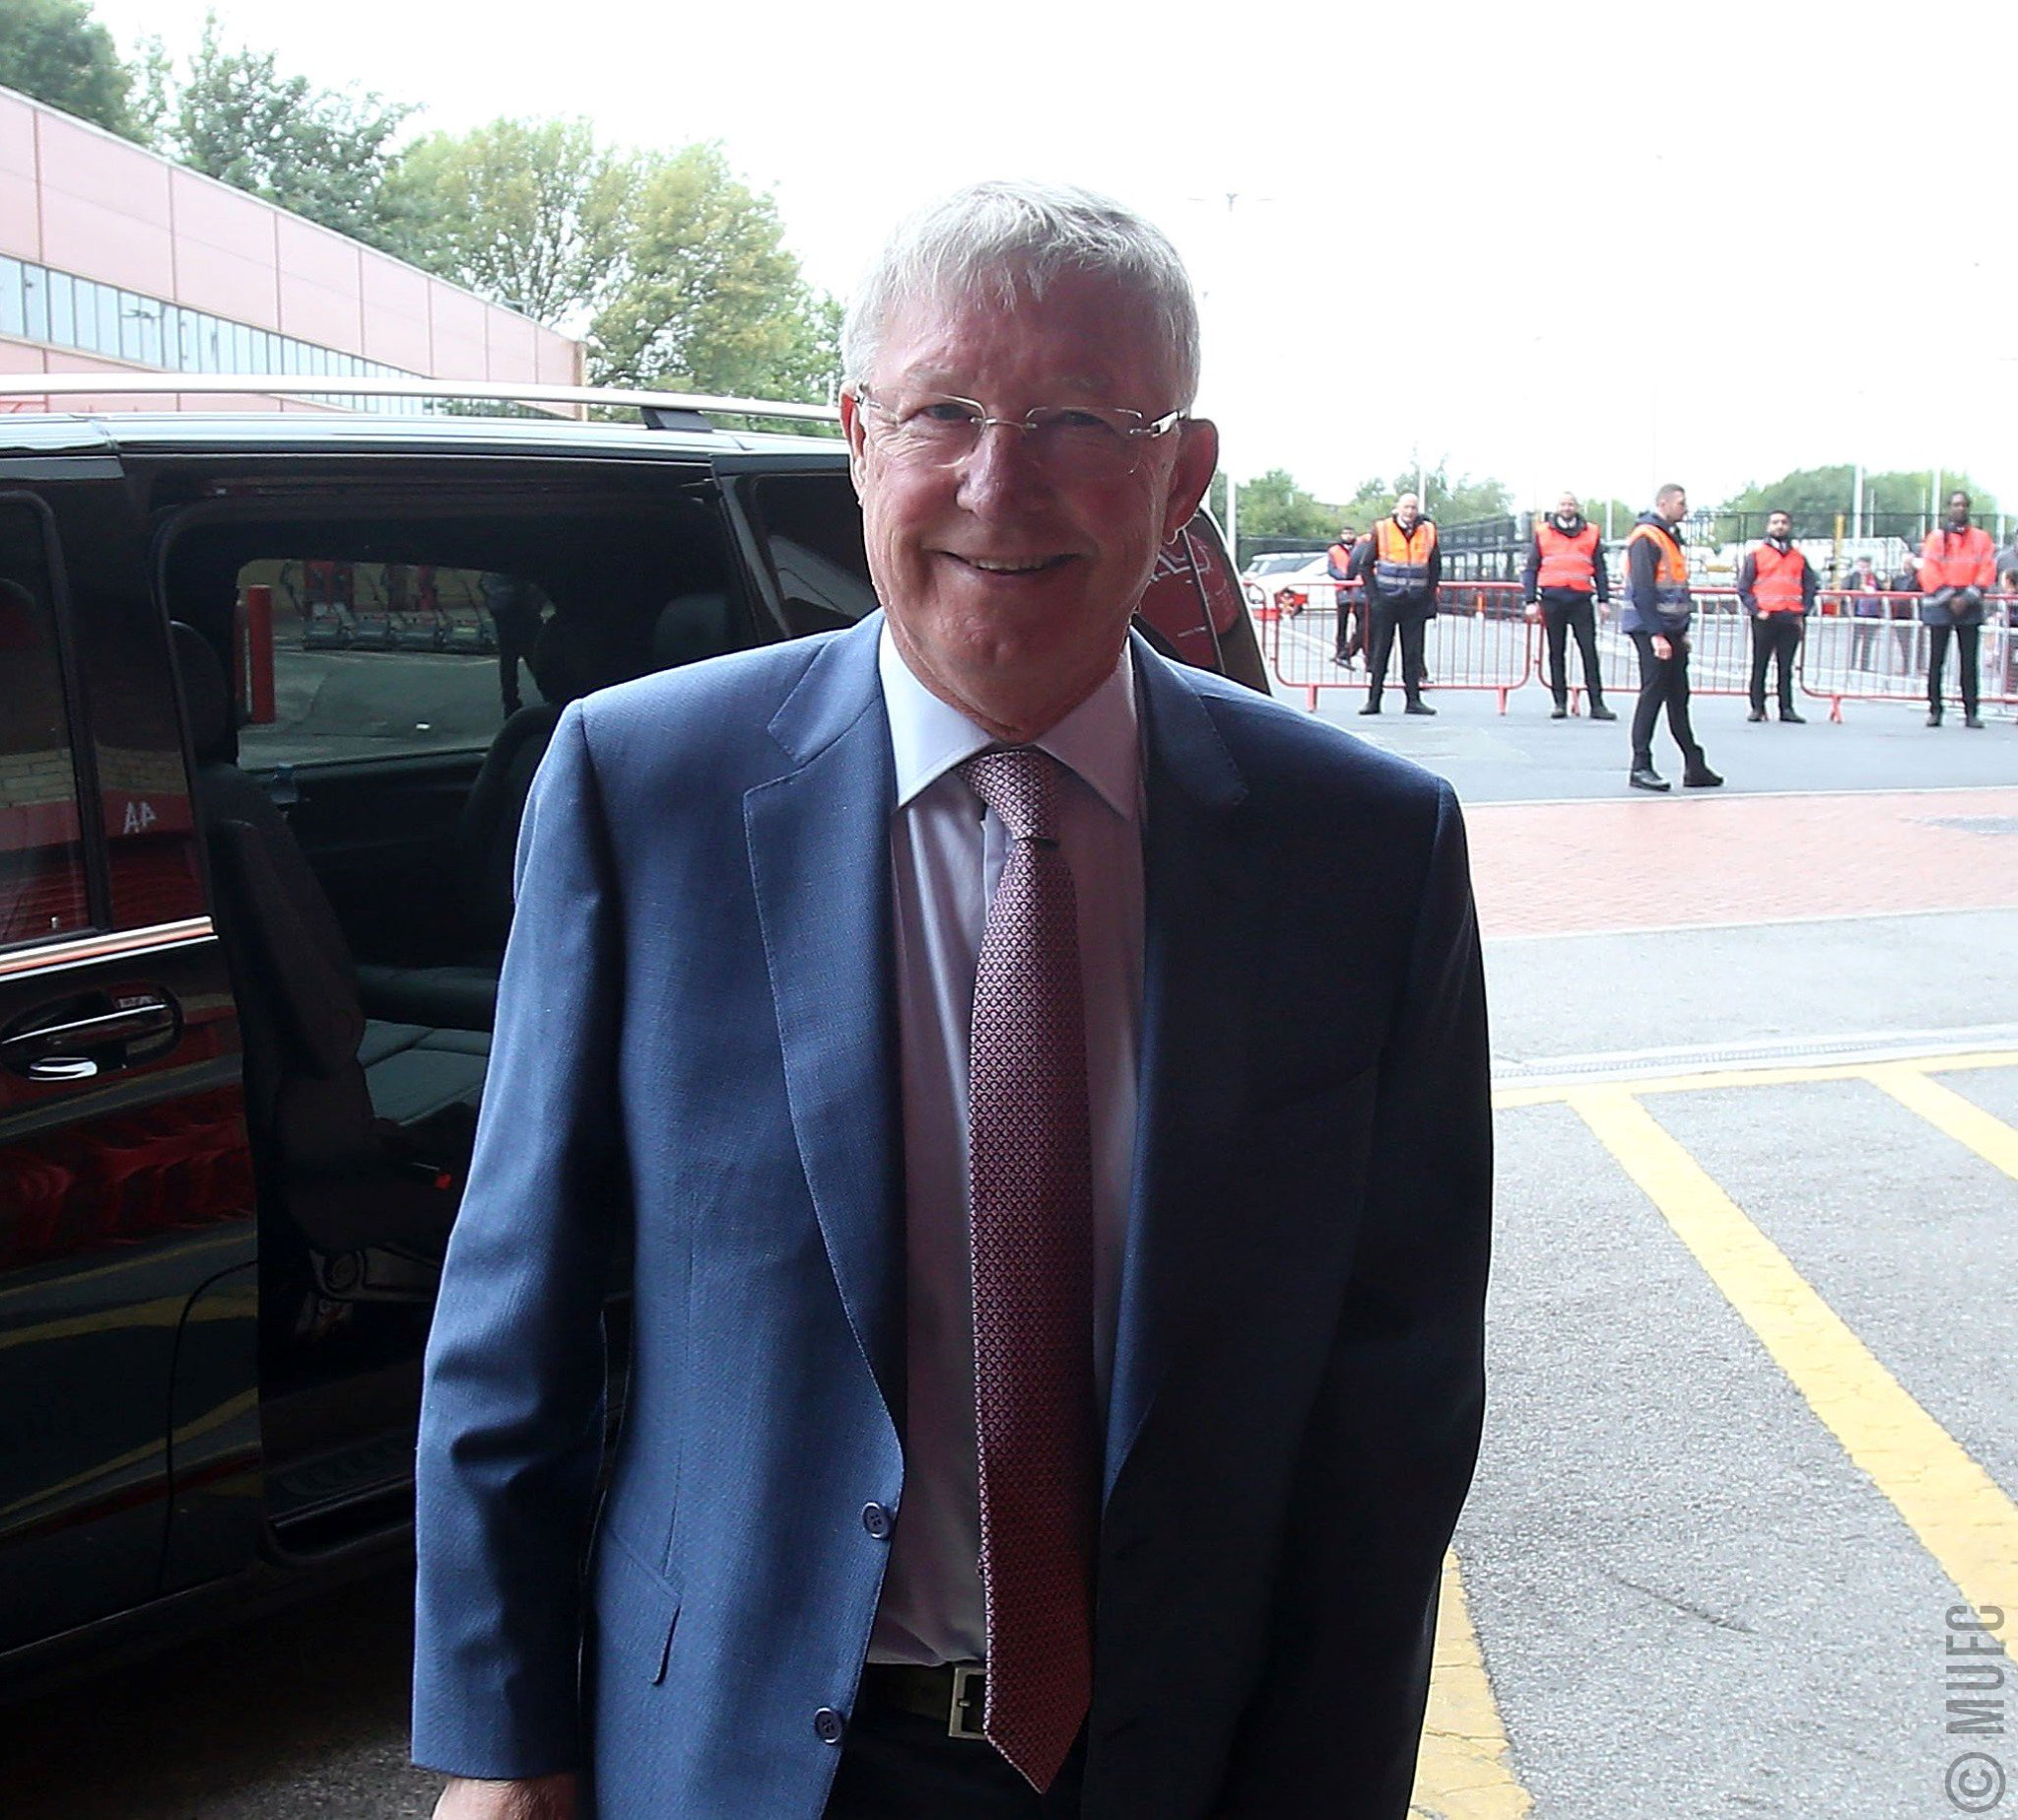 Welcome back to Old Trafford, Sir Alex. #MUFC https://t.co/RpDnitdrJZ